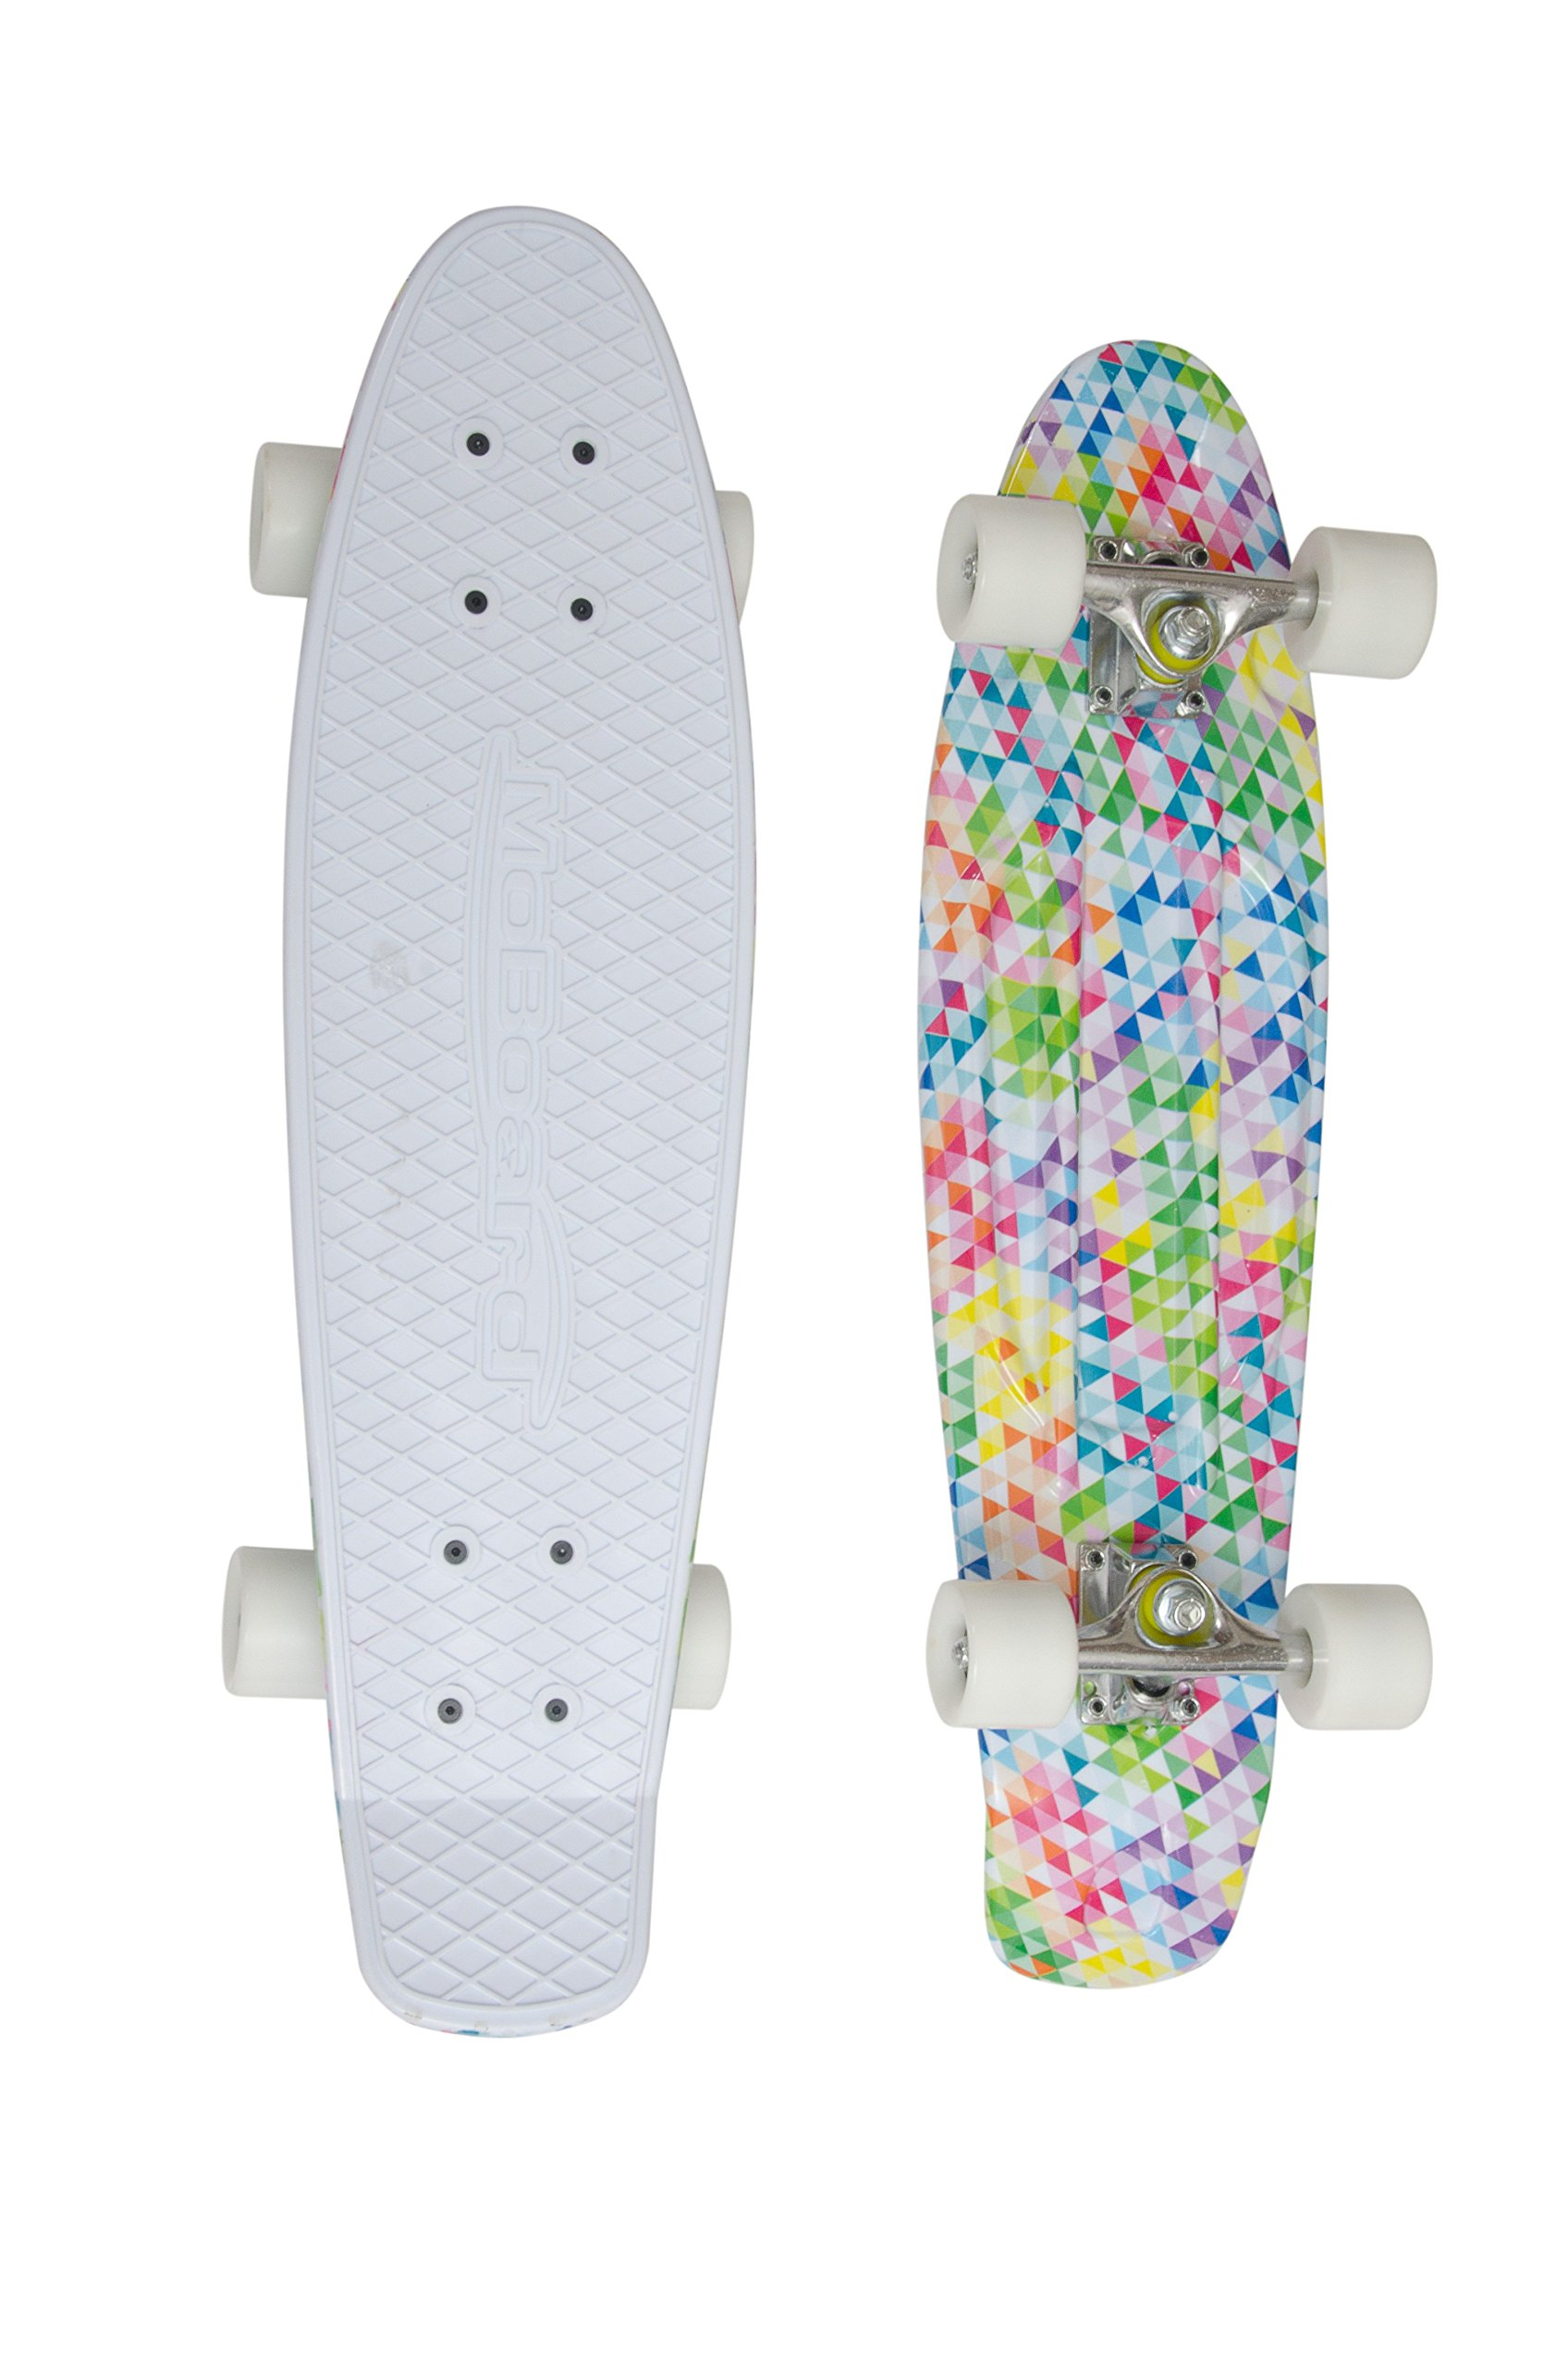 MoBoard 27'' Inch Graphic Complete Skateboard (White/Mosaic - White)